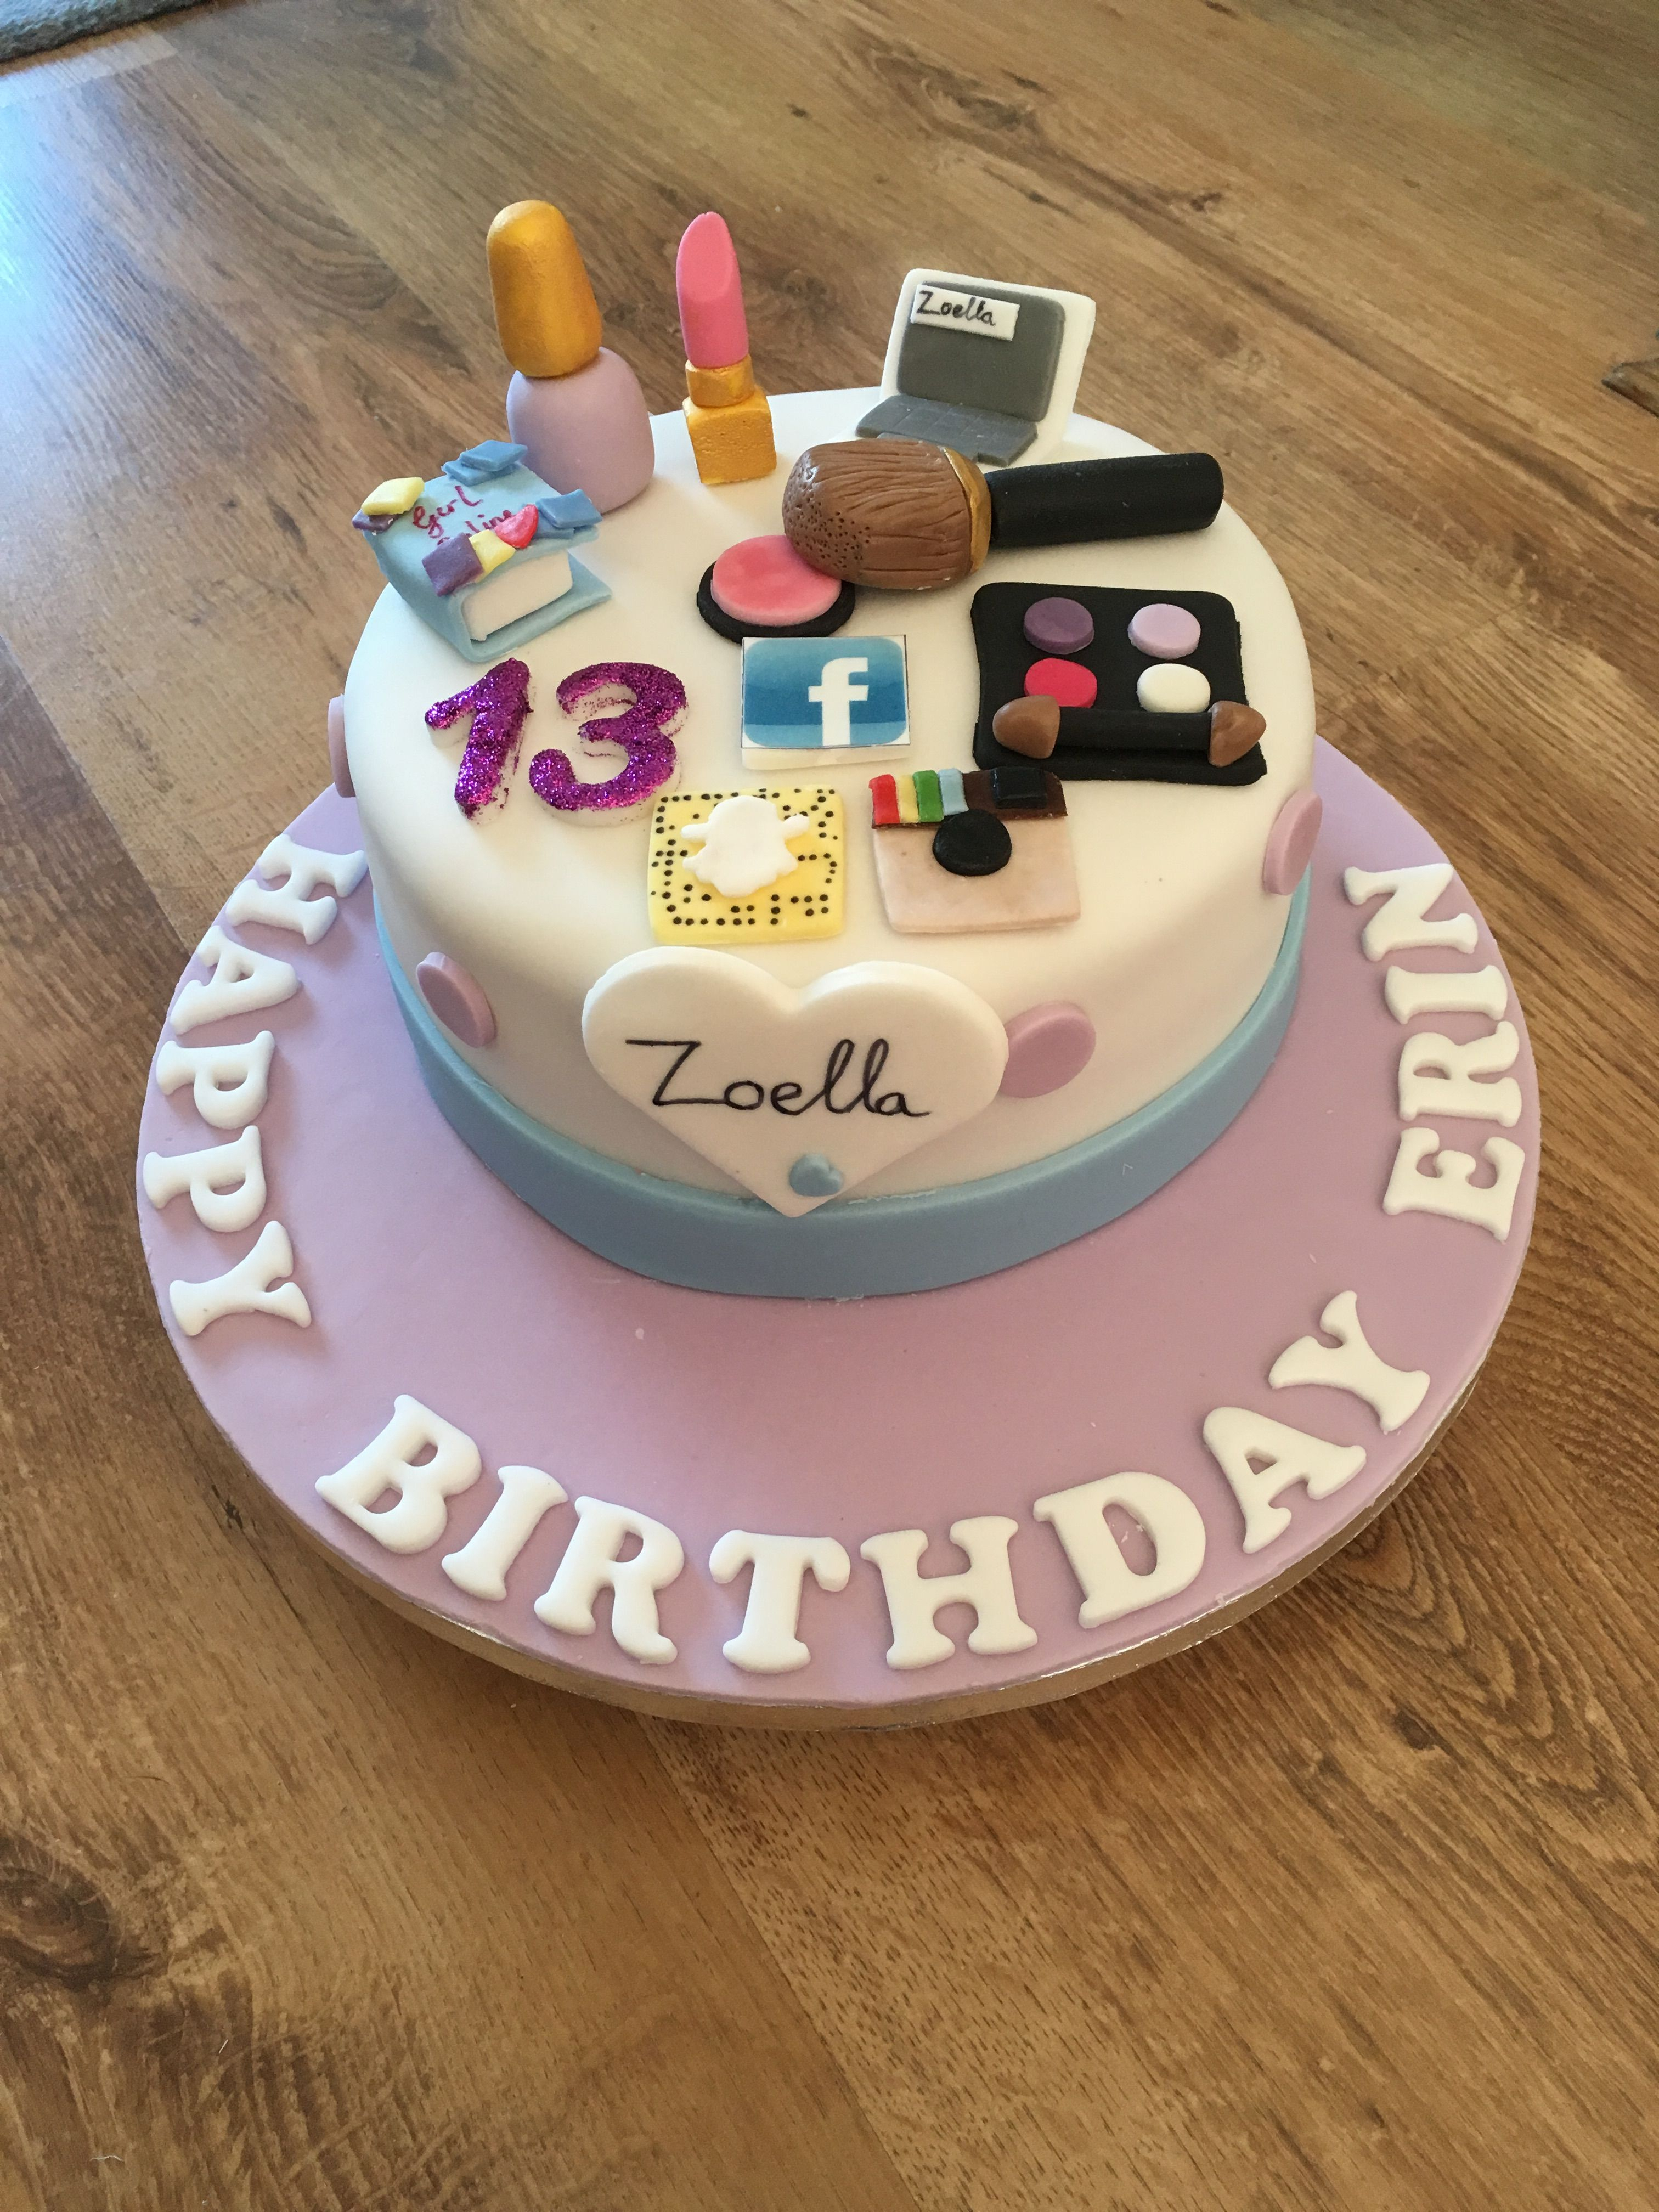 25 Marvelous Image Of 13 Year Old Birthday Cakes